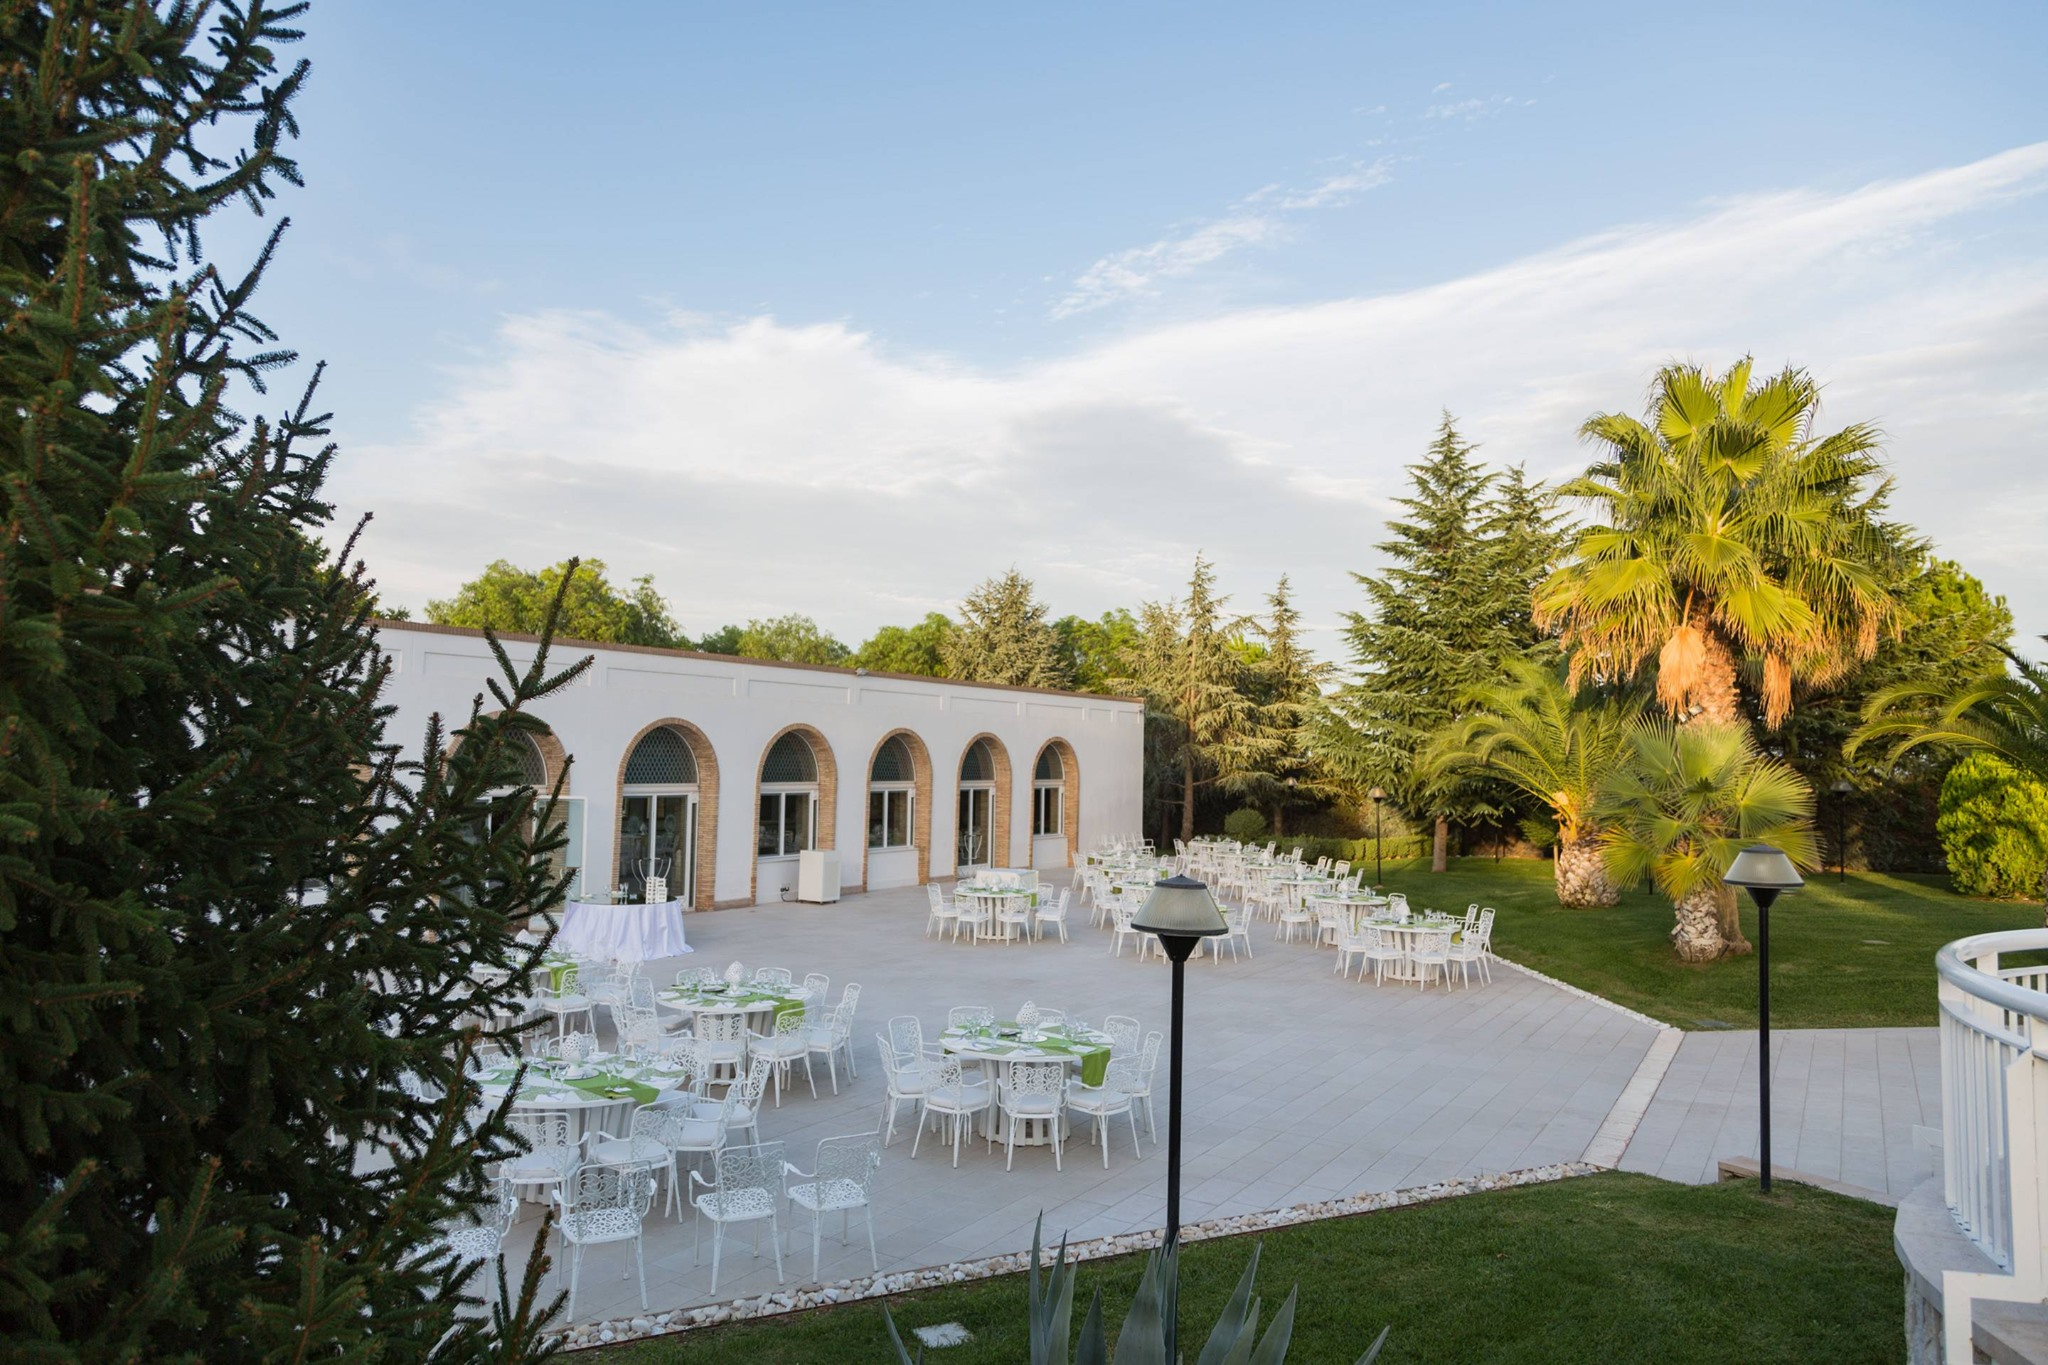 location del matrimonio